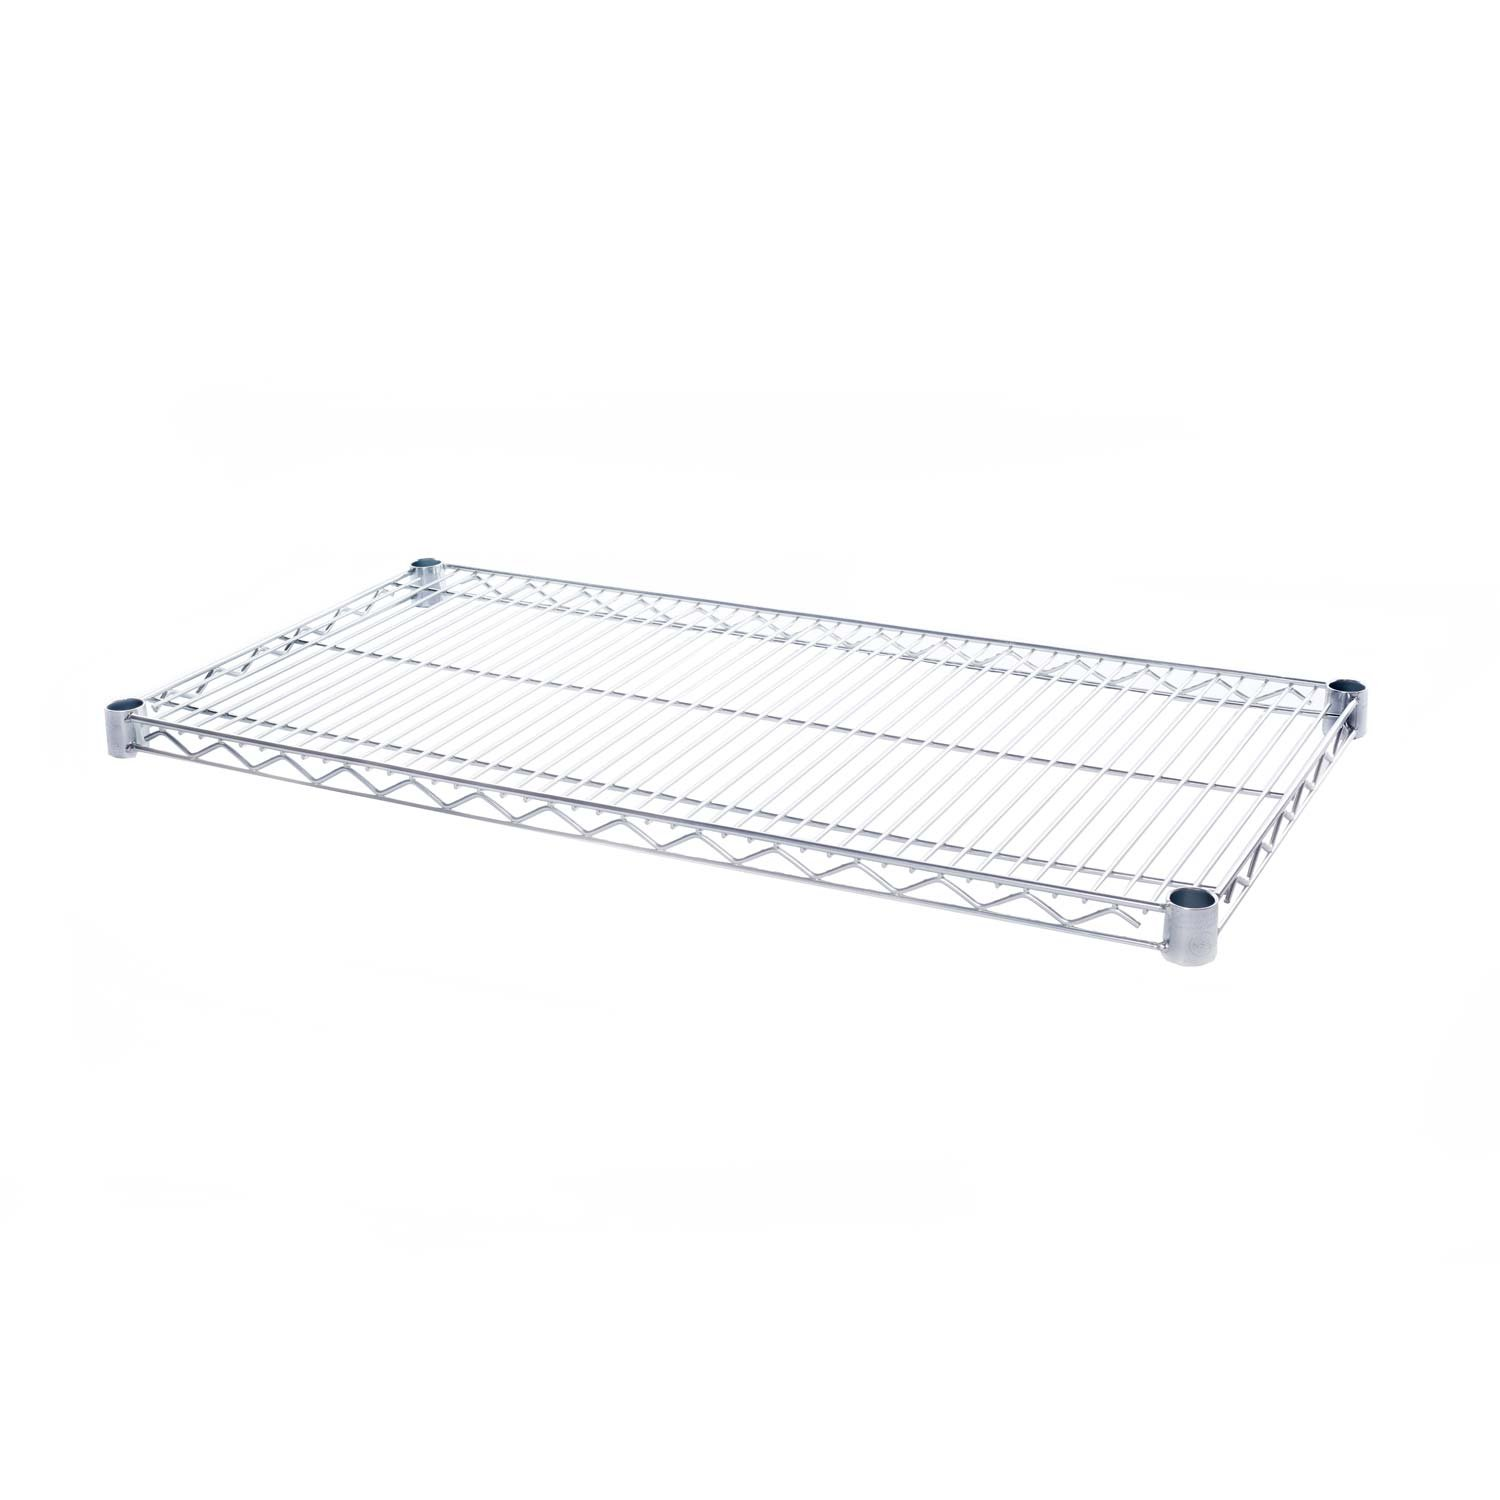 Seville Classics SHE18366 Ultra Zinc, NSF-Certified Ultra Durable Commercial-Grade Steel Wire Shelf, 36'' W x 18'' D